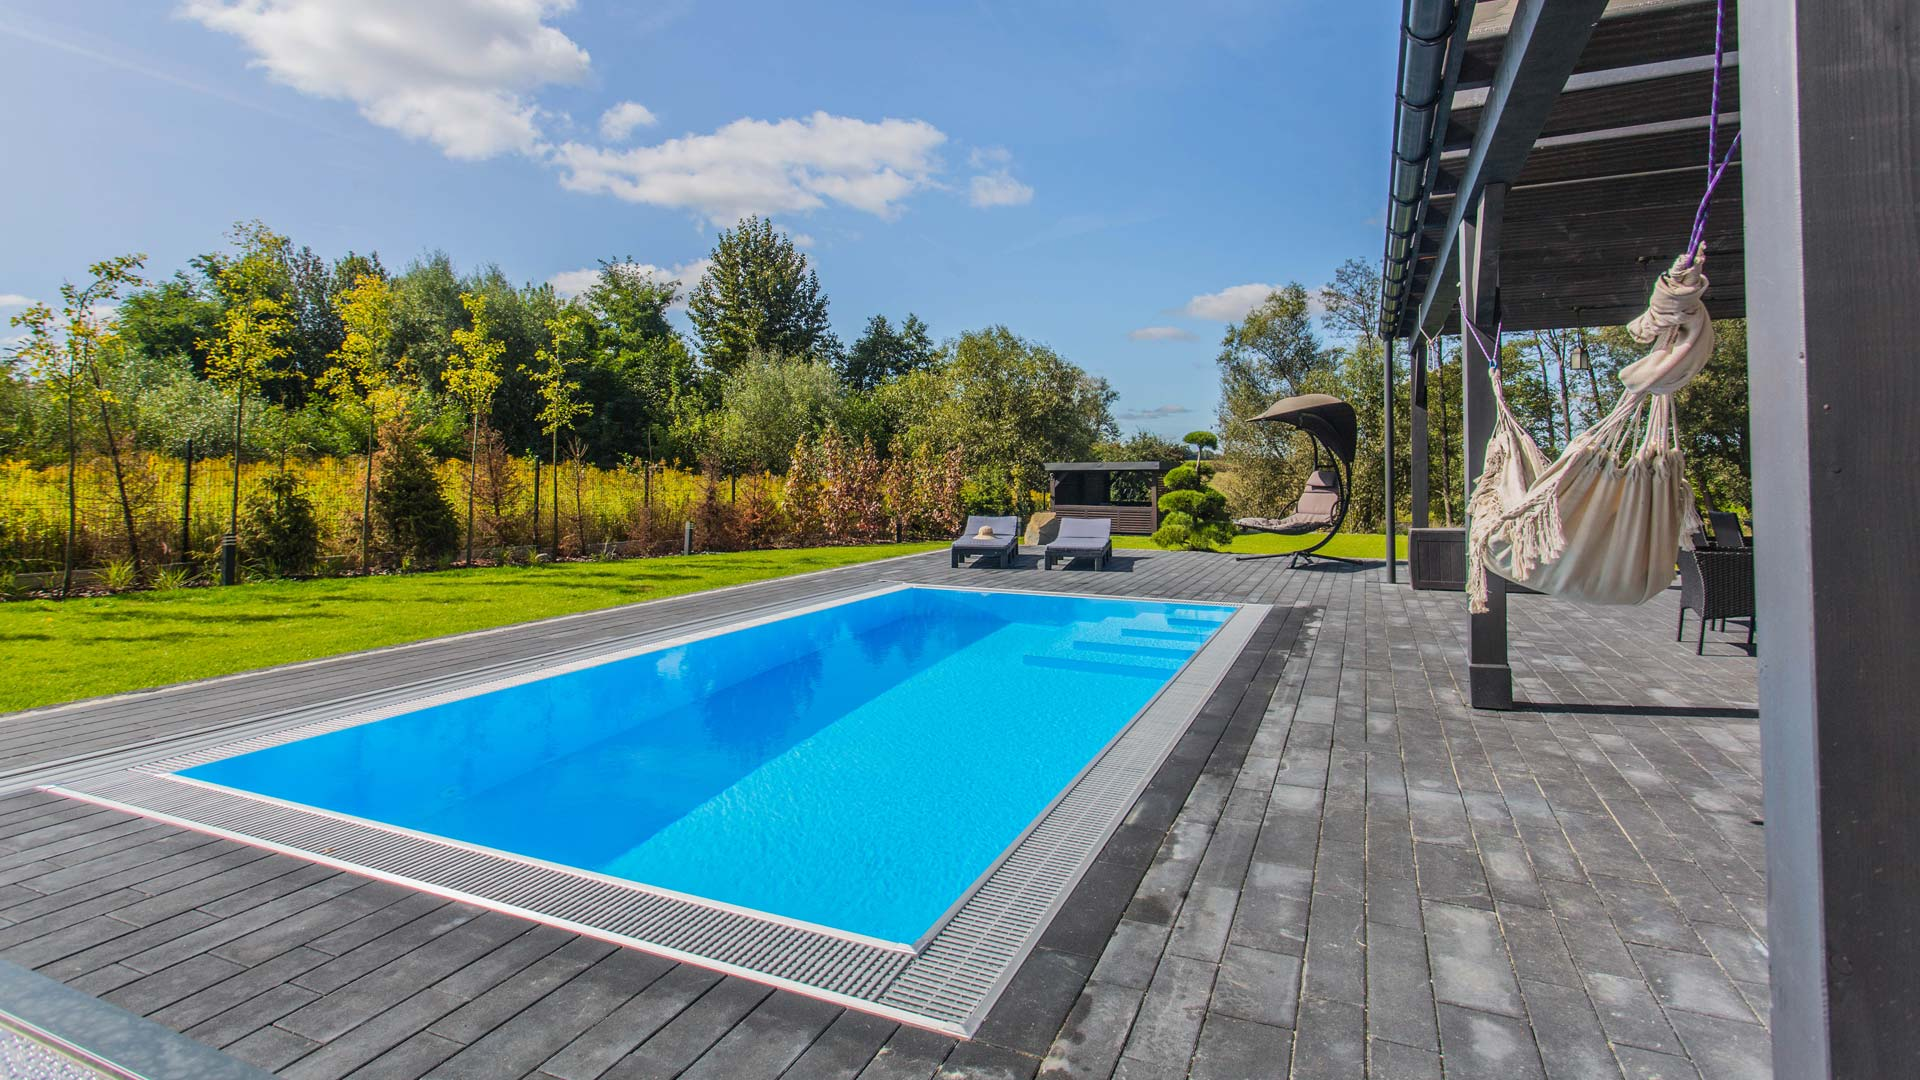 Diamant pools pool enclosures hot tubs sunrooms and for Pool design mistakes